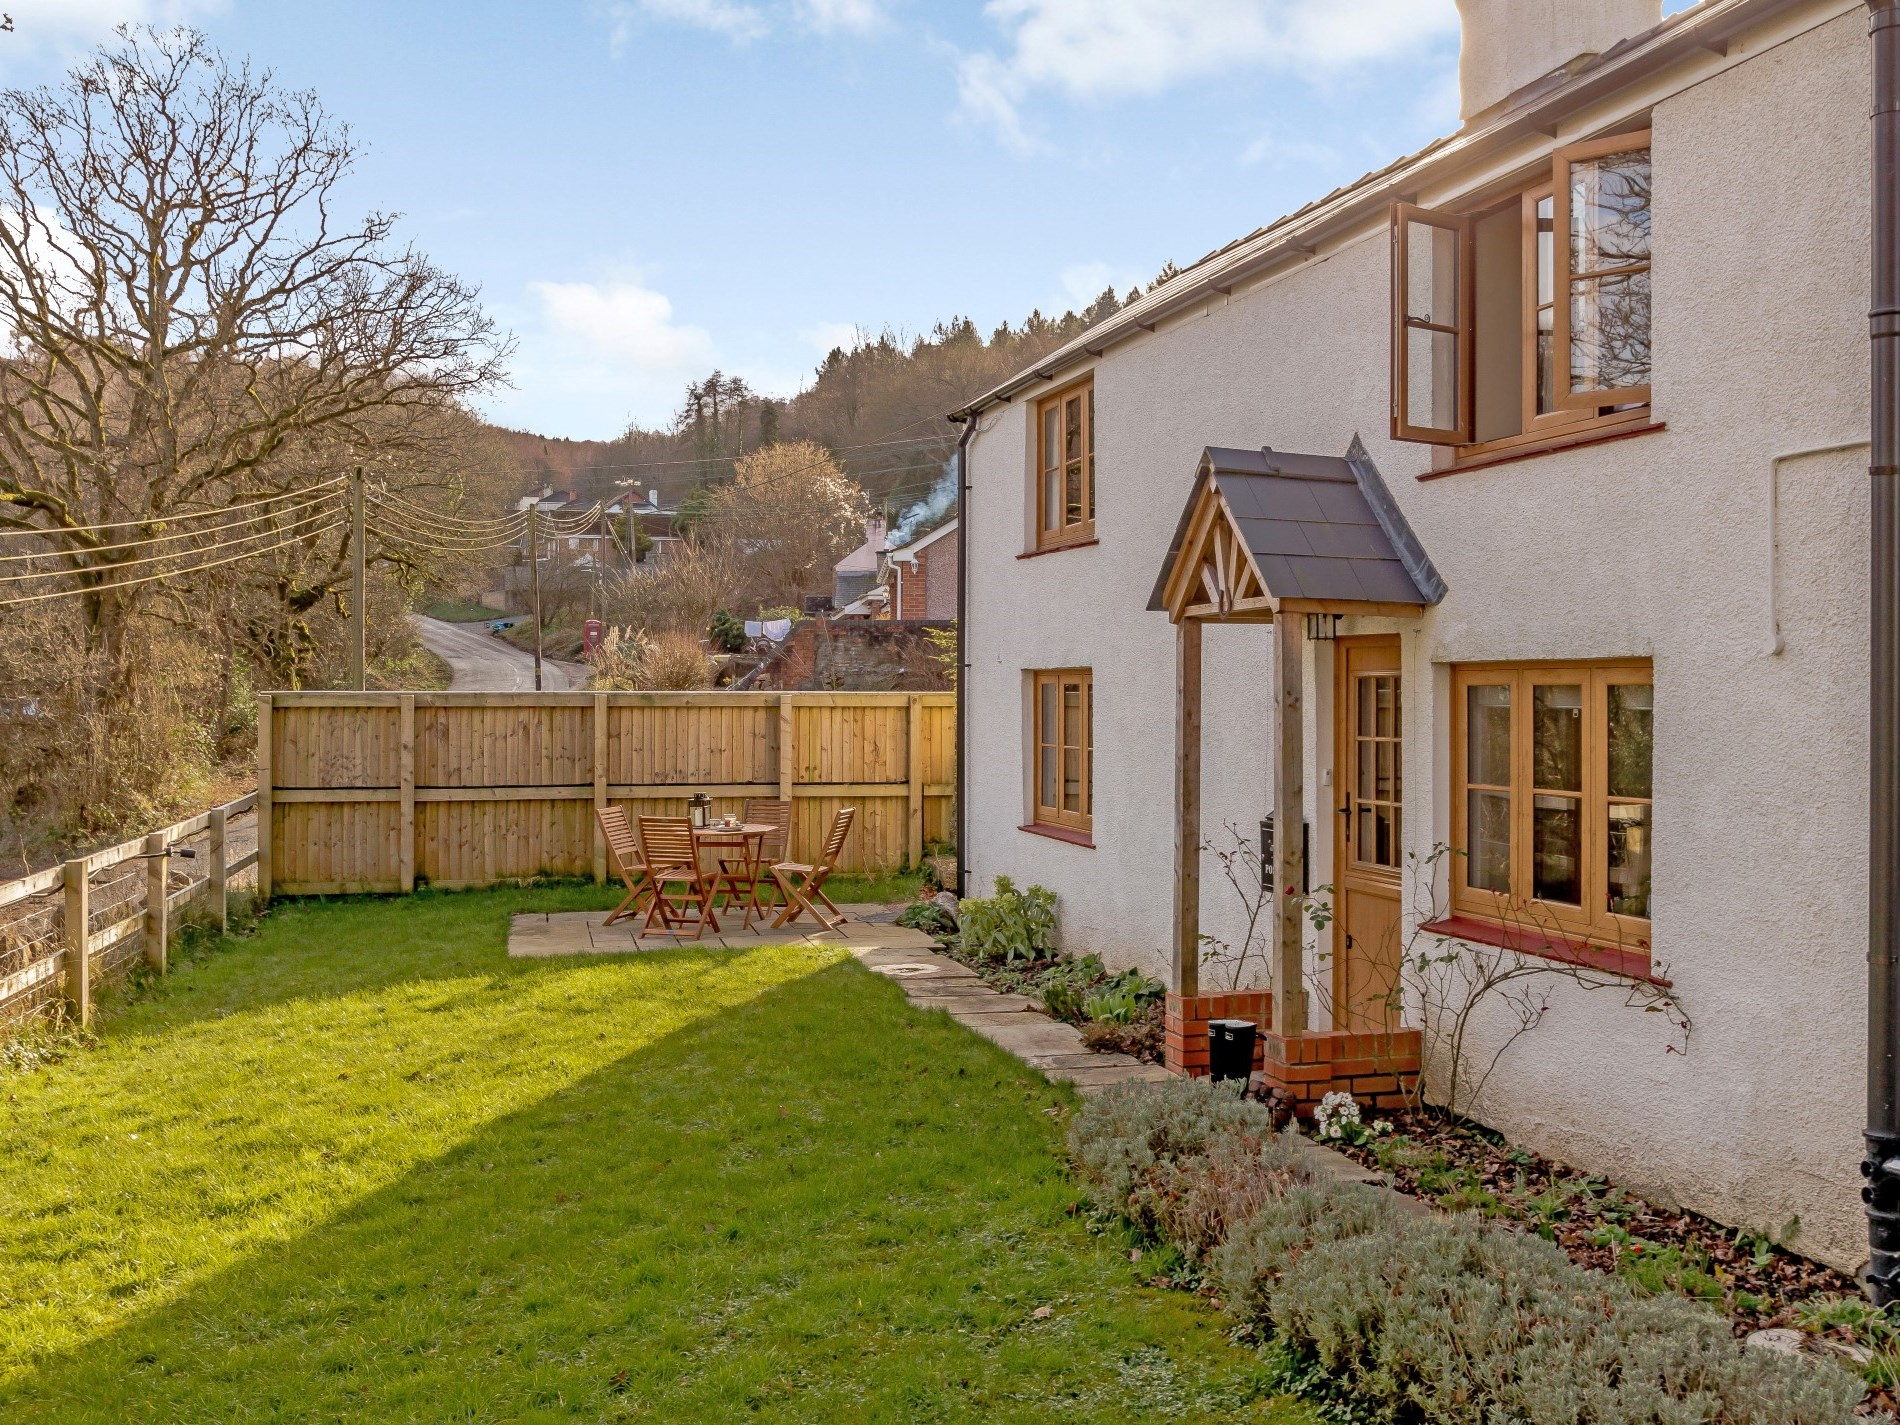 2 Bedroom Cottage in Lydbrook, Heart of England